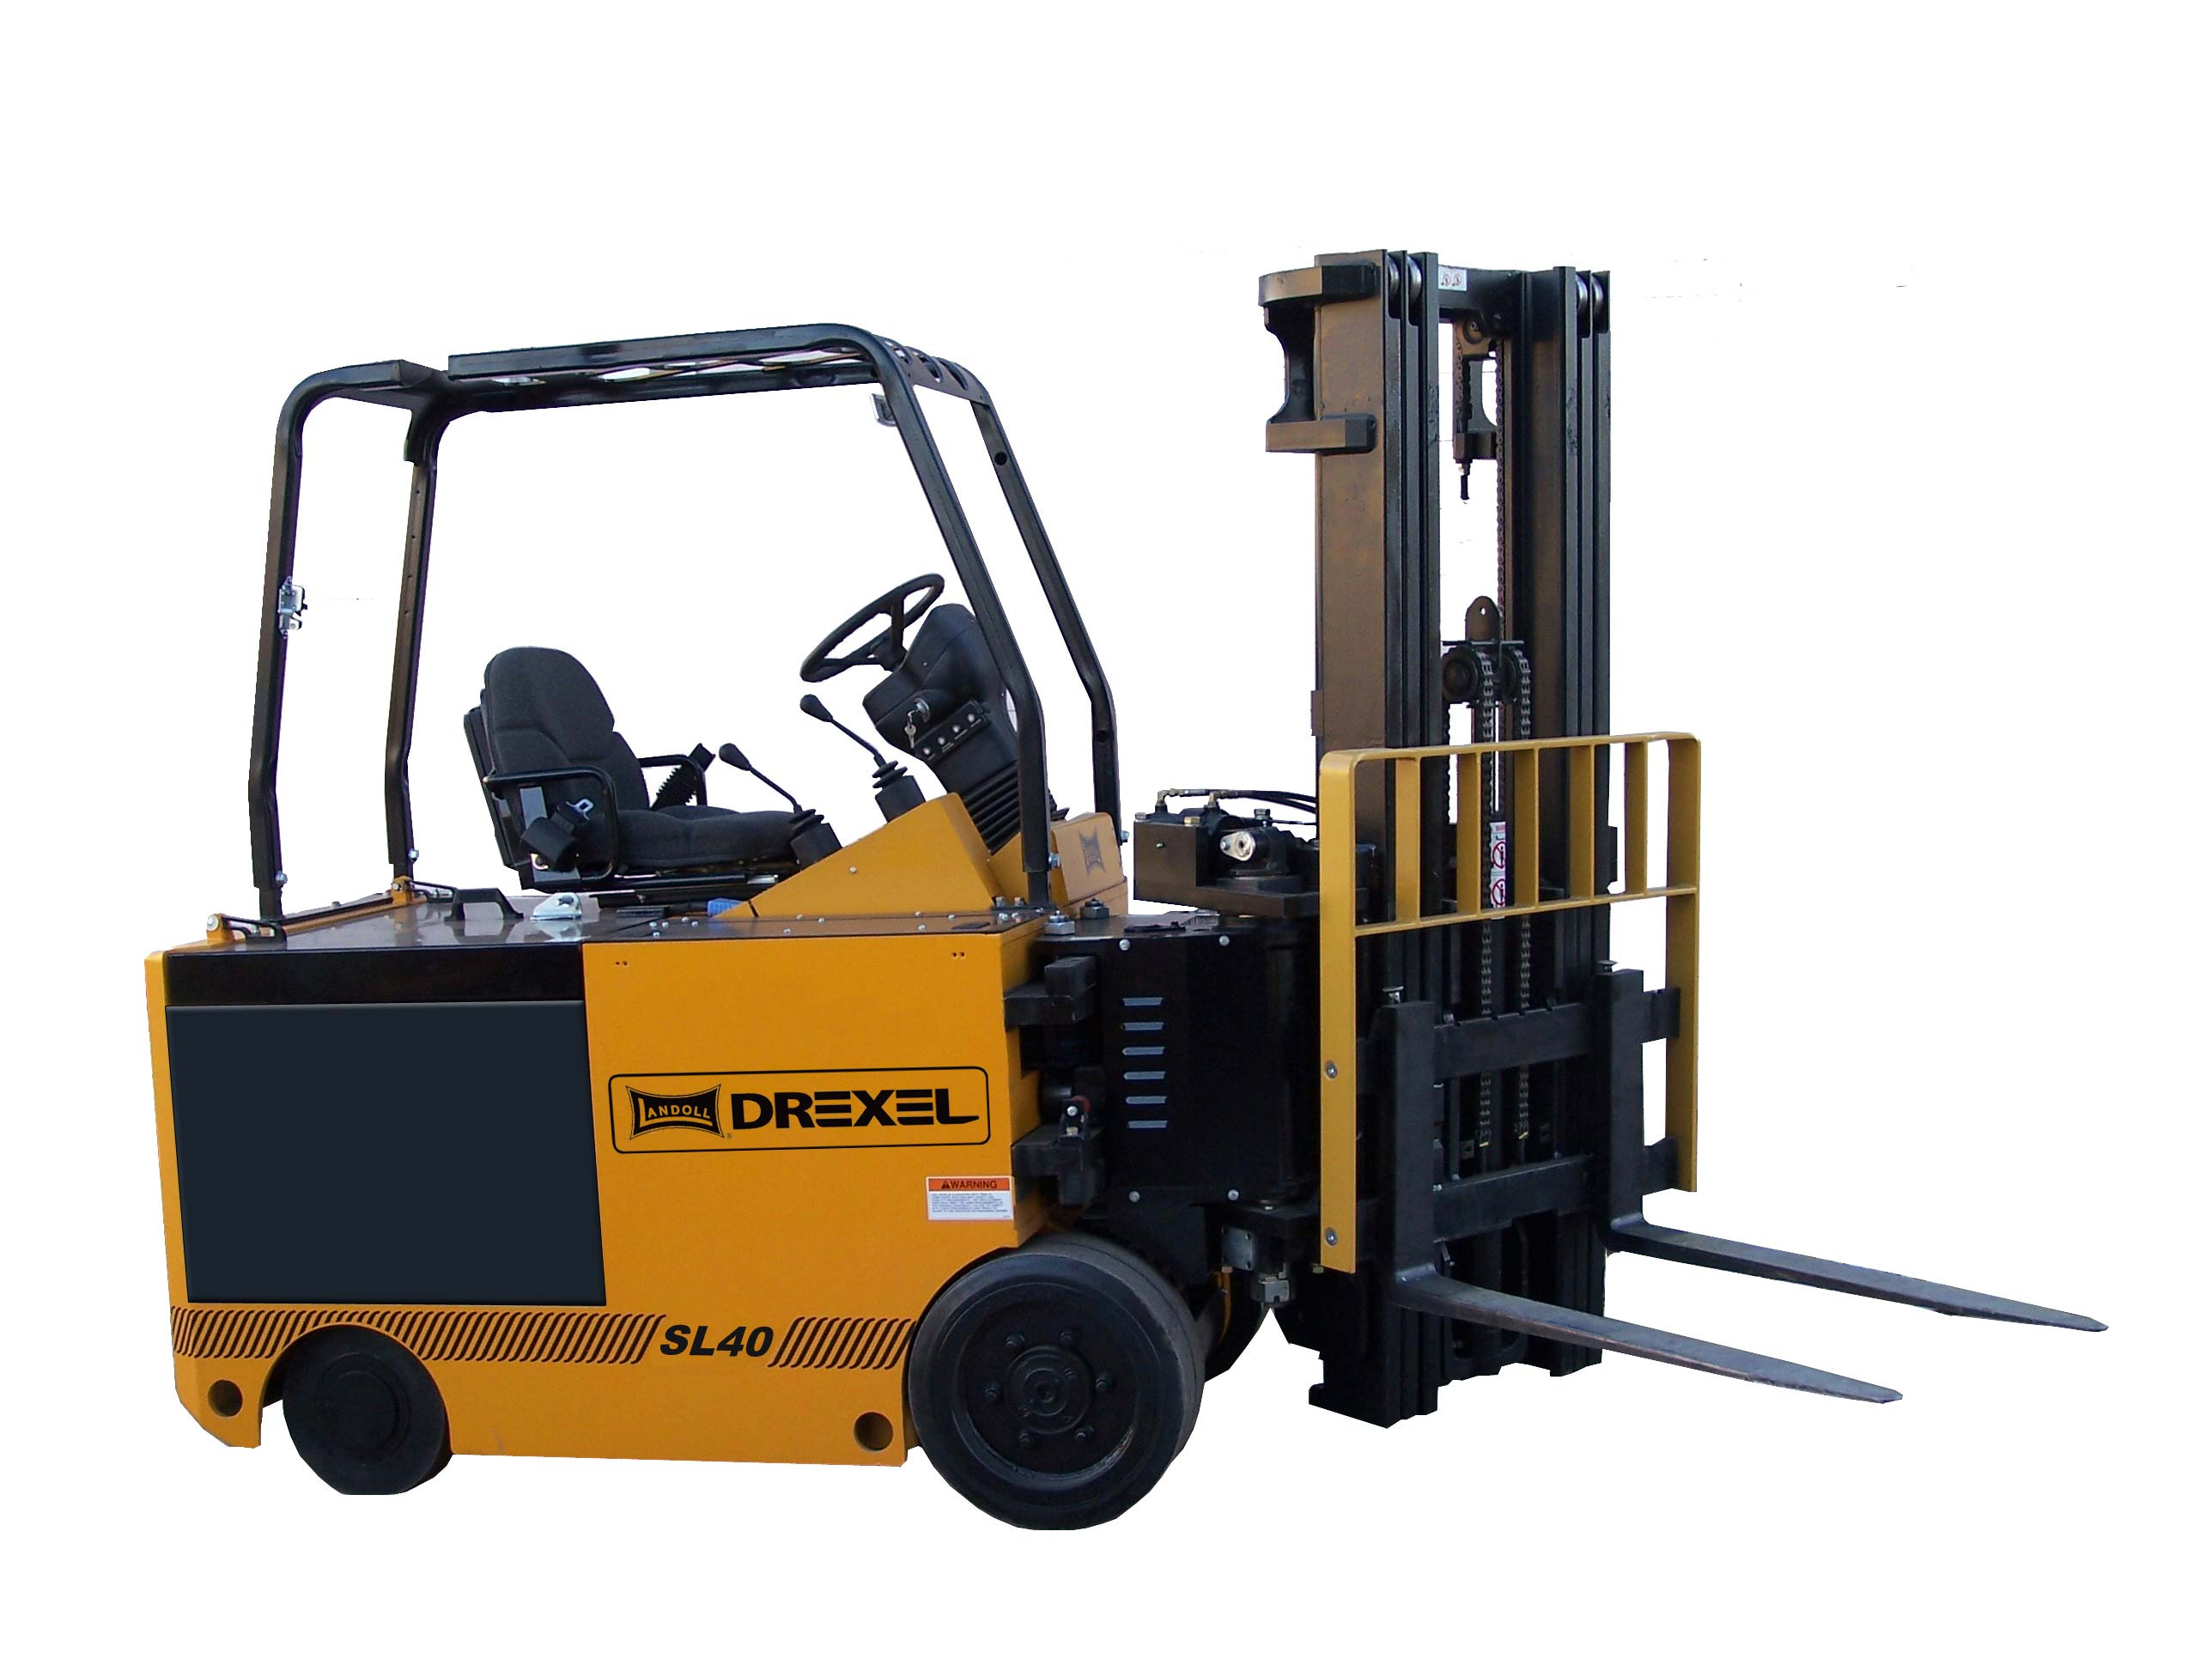 New Forklifts For Sale In Atlanta New Forklifts For Sale In Georgia